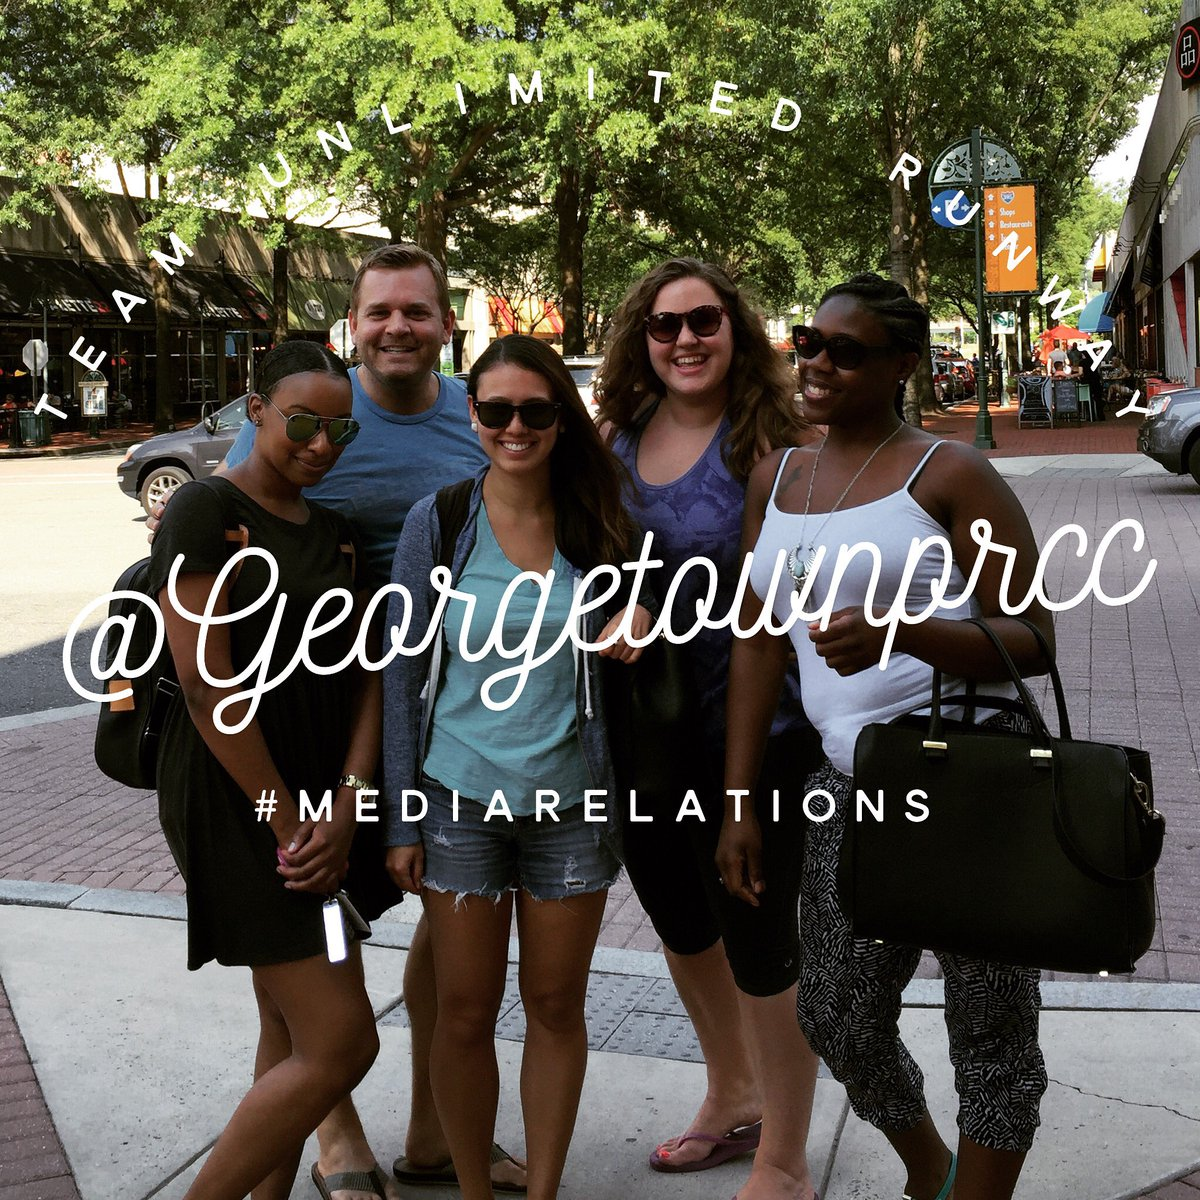 Excited to start our PR plan for @RenttheRunway's unlimited service for our @GeorgetownPRCC #MediaRelations project https://t.co/Z5rBxclYeI